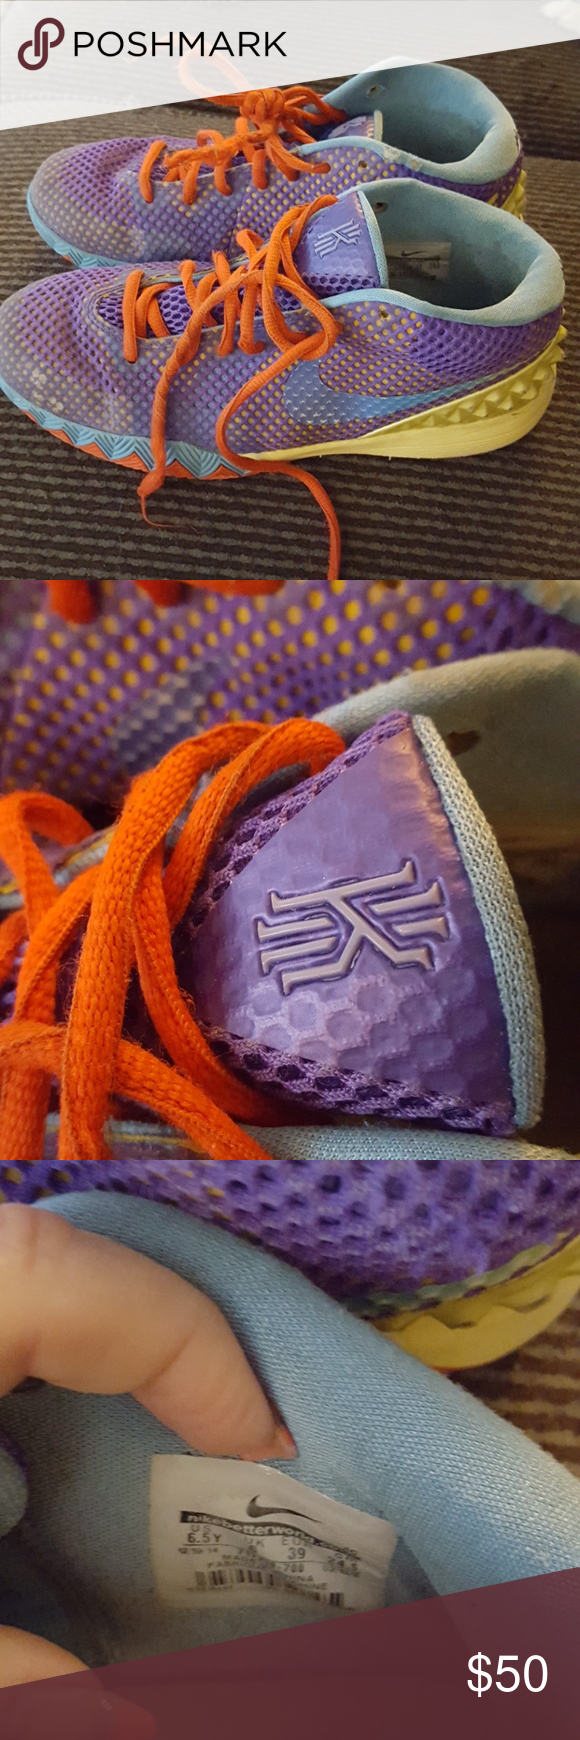 Kyrie Irving 1's | Kyrie irving shoes, Kyrie irving 1 ...Kyrie Irving Cleansing